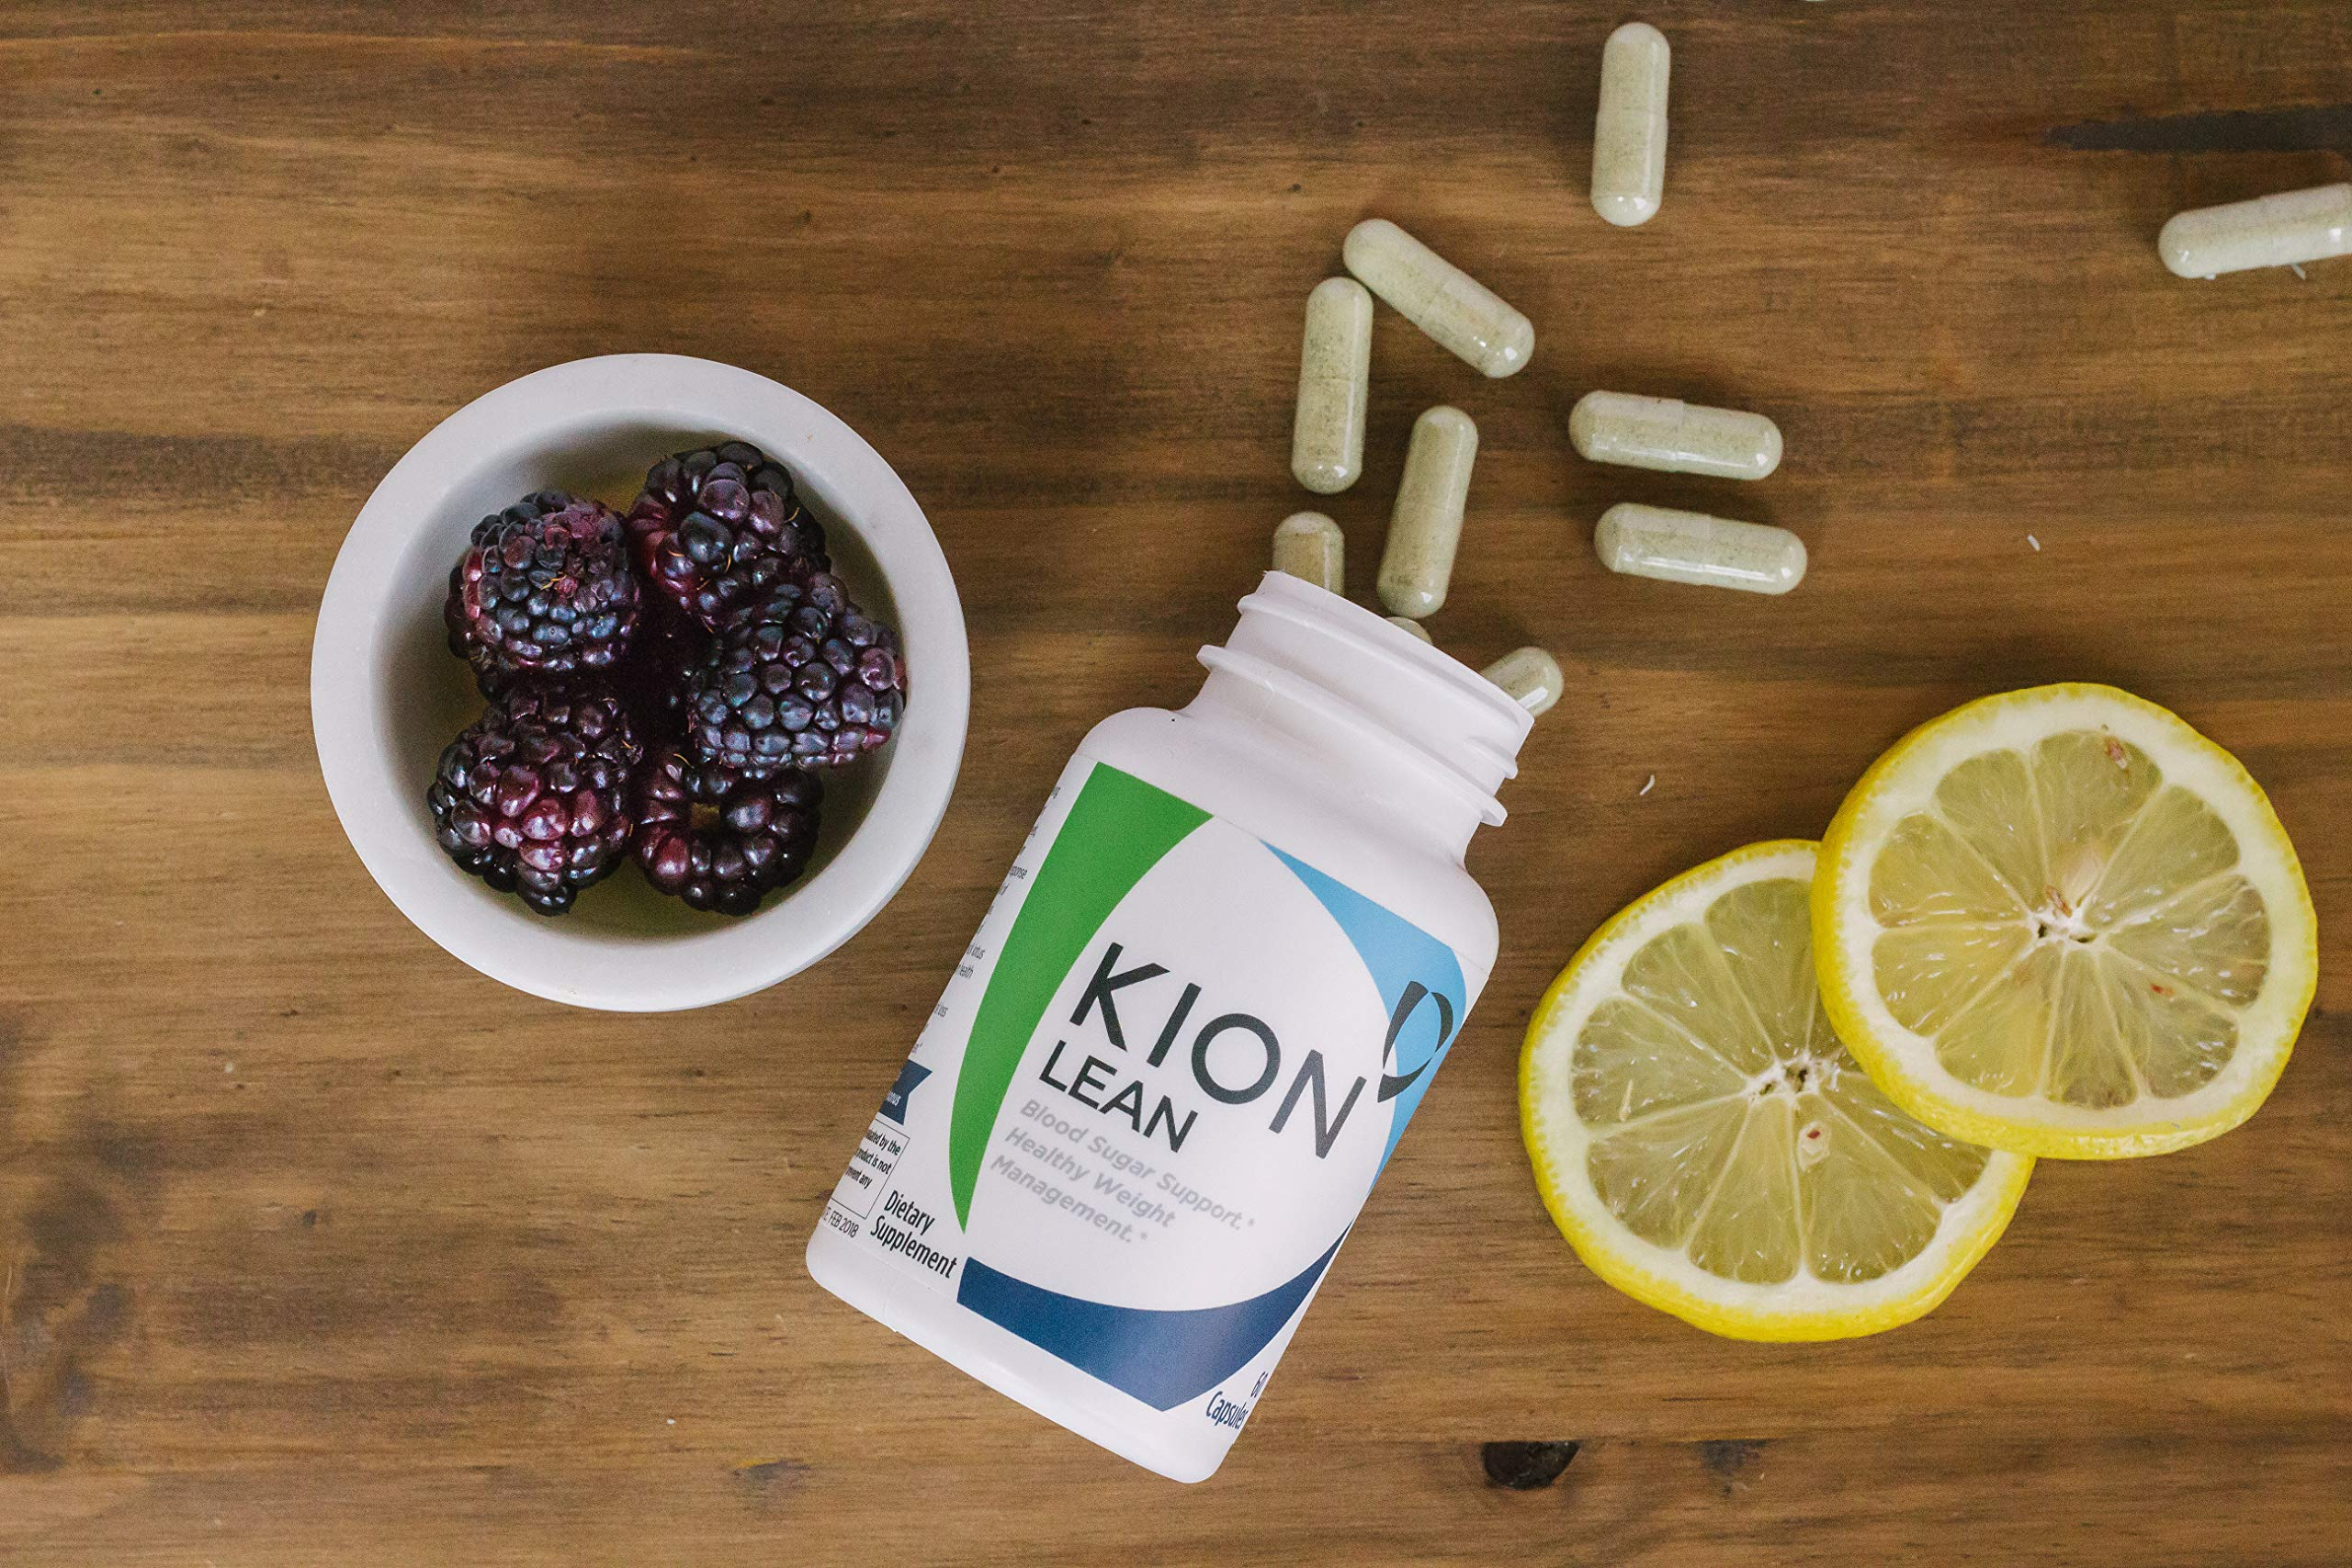 Kion Lean | Supports Weight Management, Liver Health, Blood Sugar Regulation, Healthy Body Fat Levels, and Longevity | Contains Bitter Melon (Glycostat) and Rock Lotus (Kingsun) | 30 Servings by Kion (Image #7)